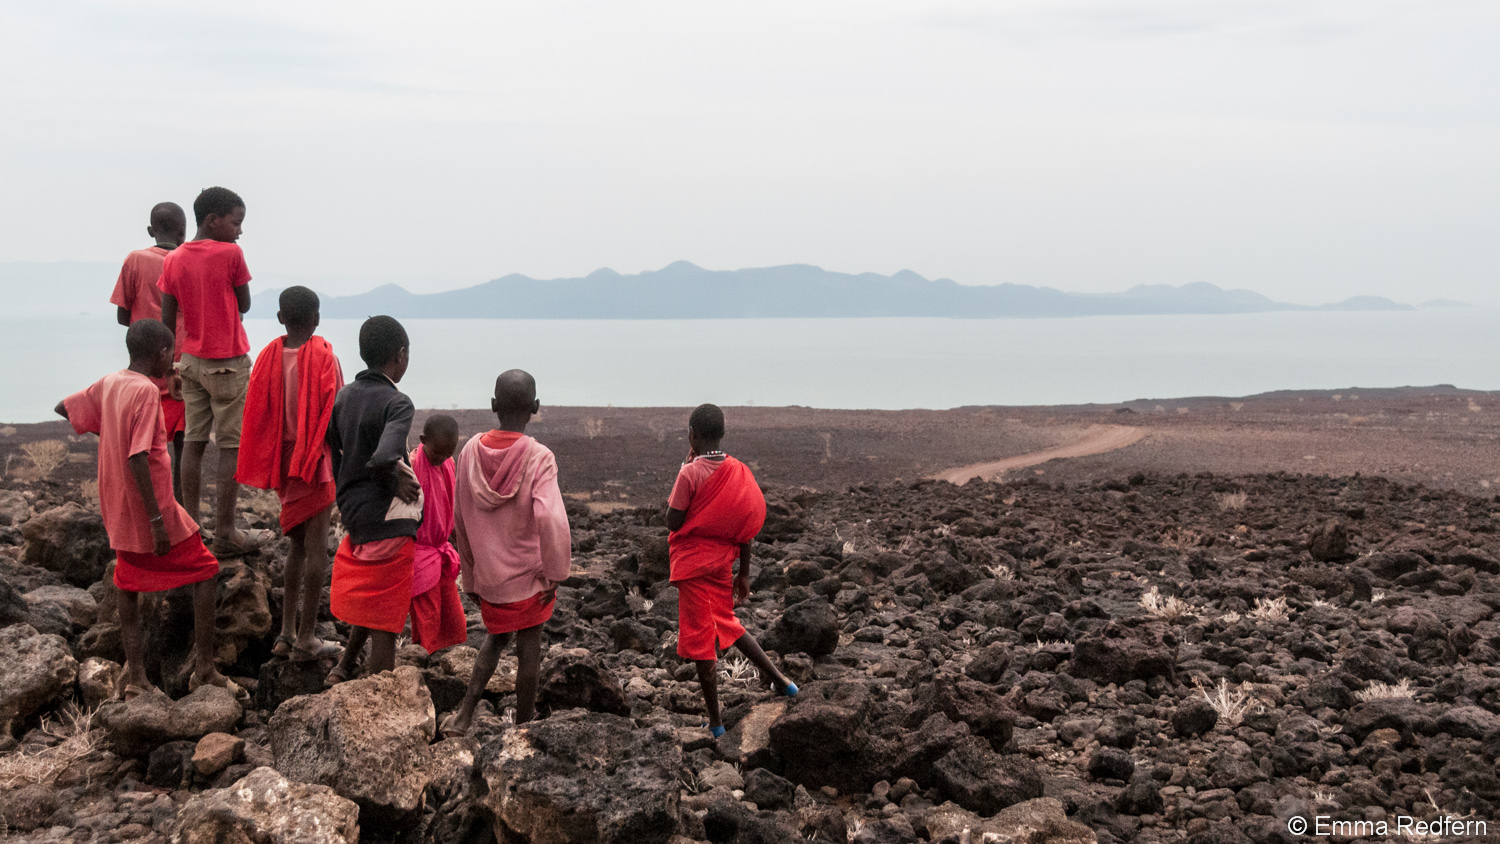 Taking in the first view of Lake Turkana